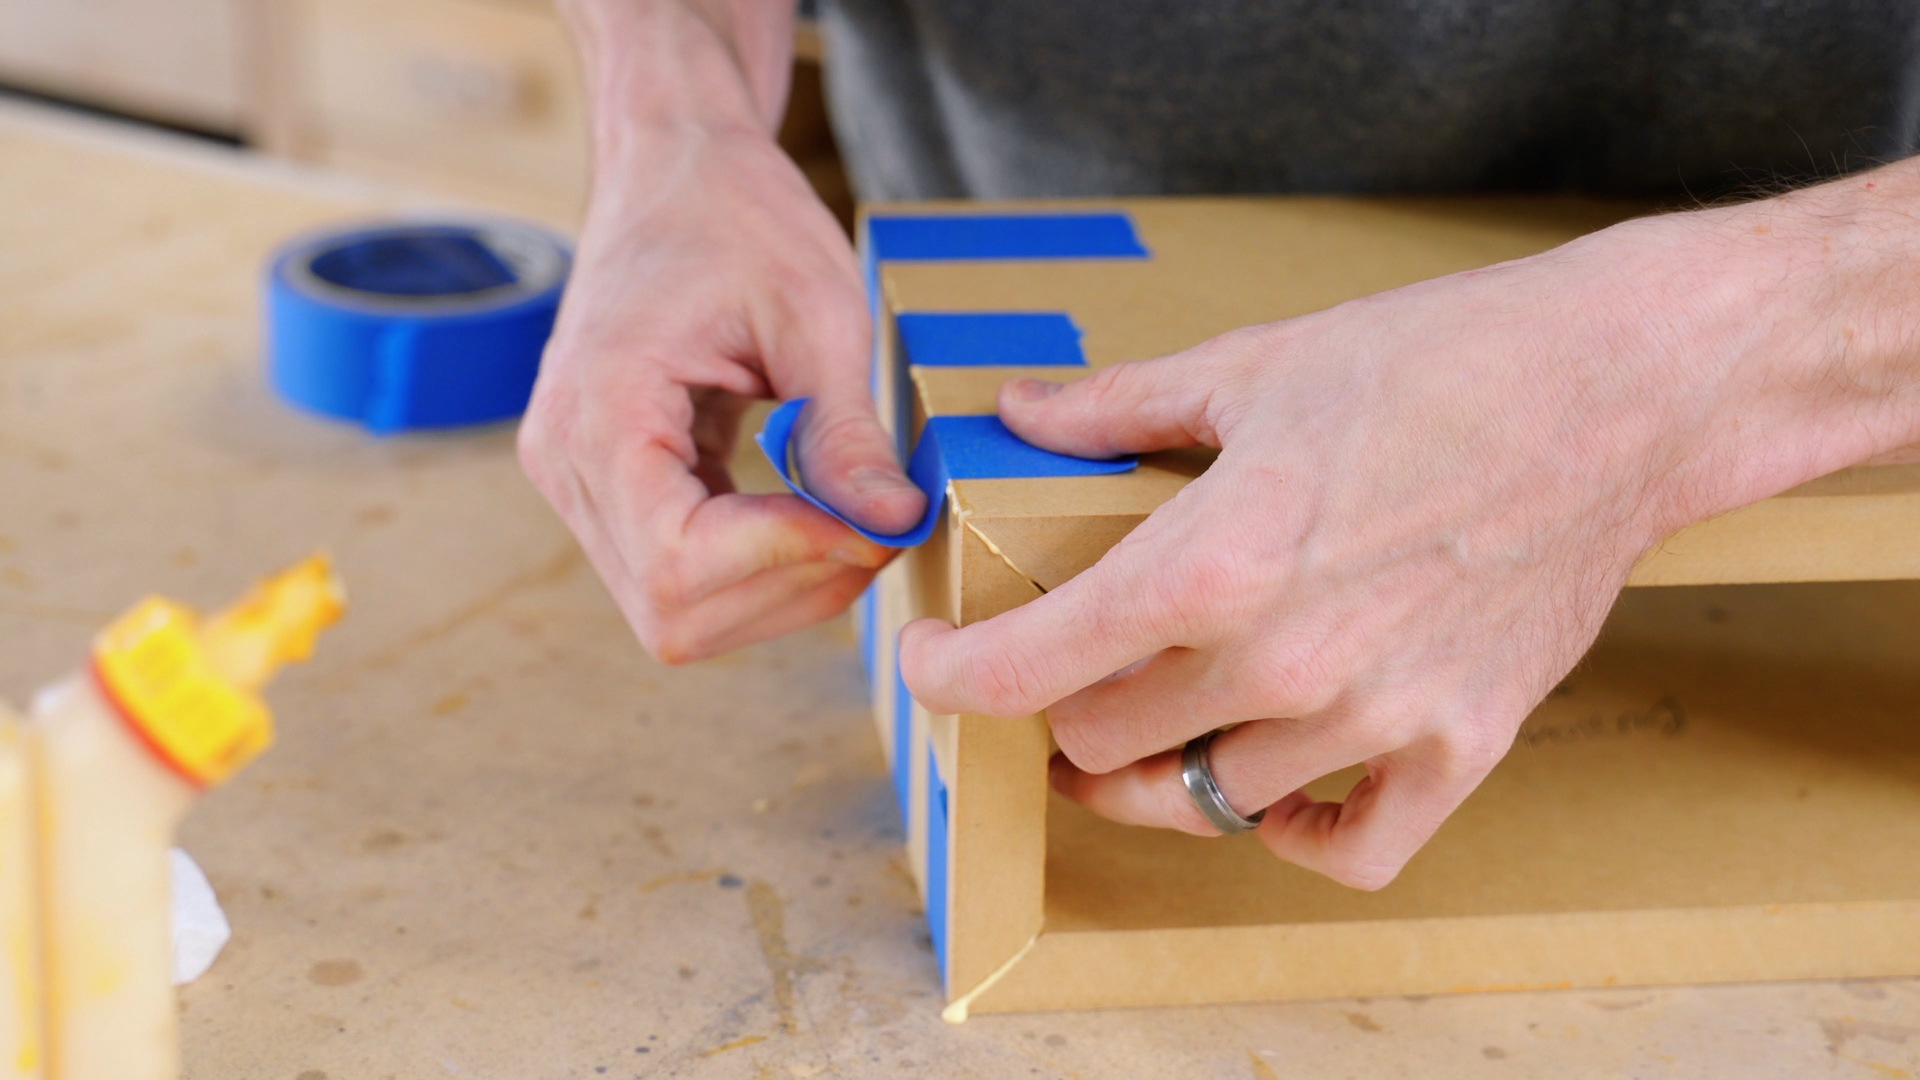 Use blue tape to assemble the Bluetooth speaker box together